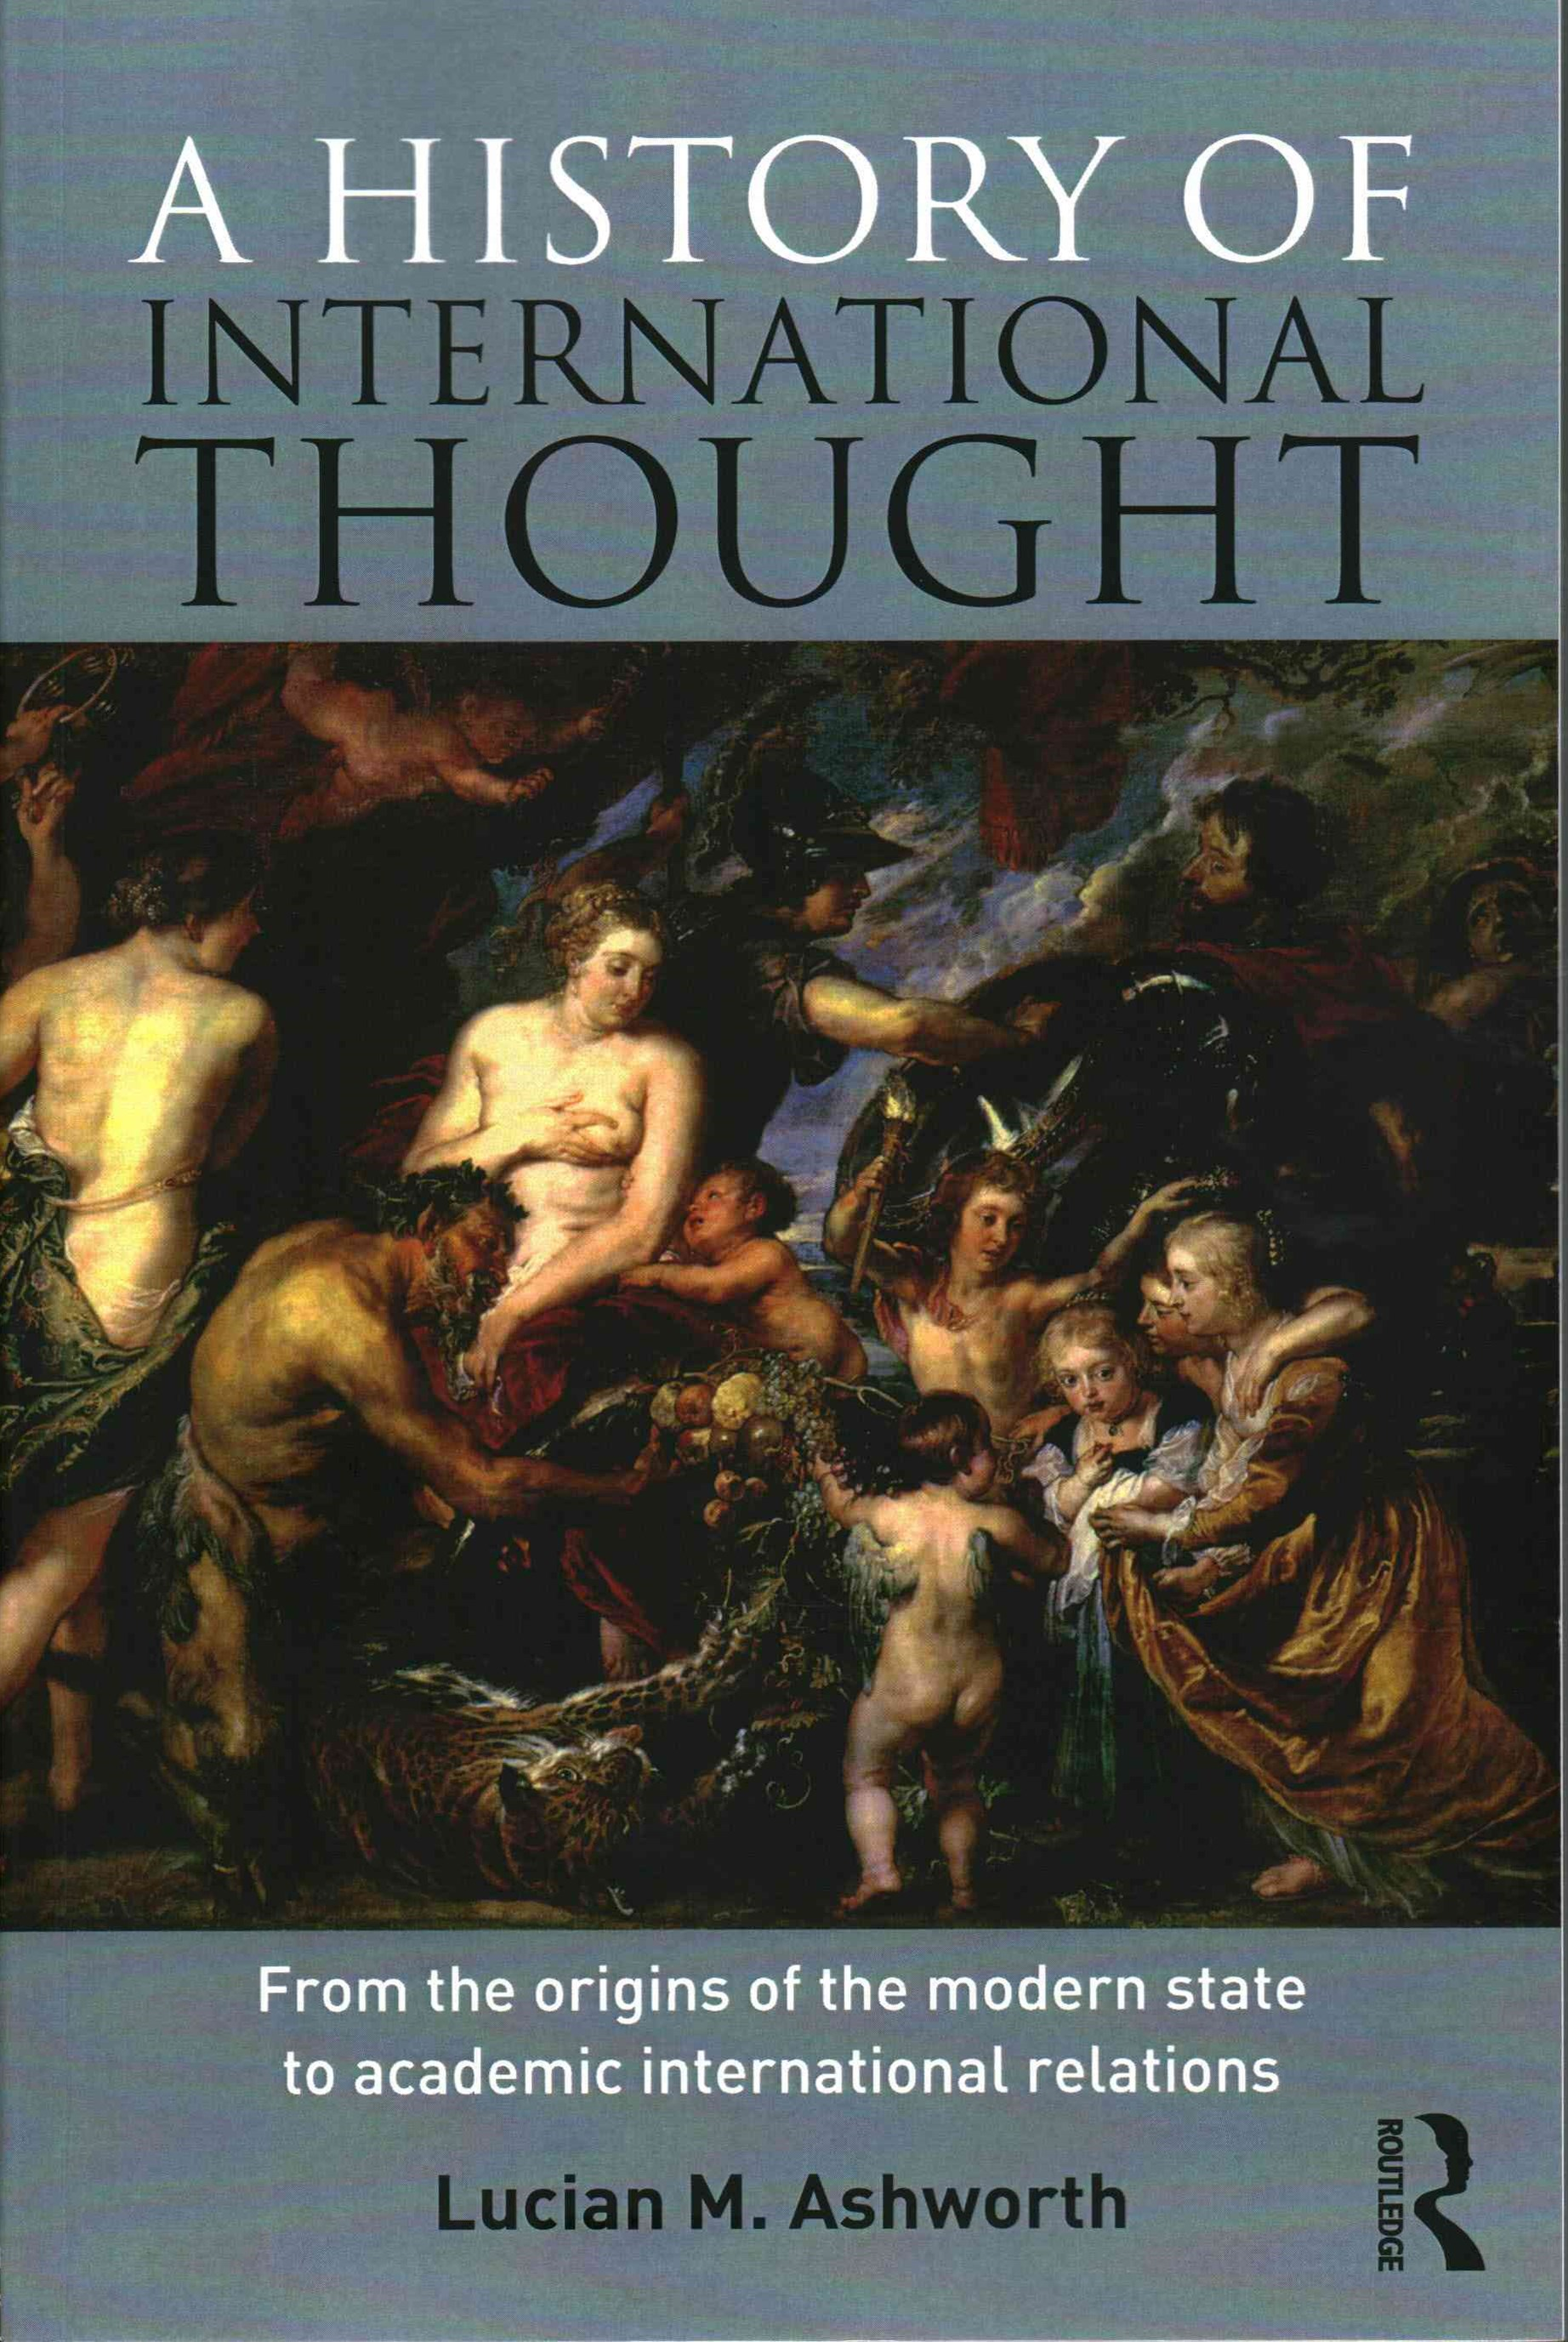 History of International Thought